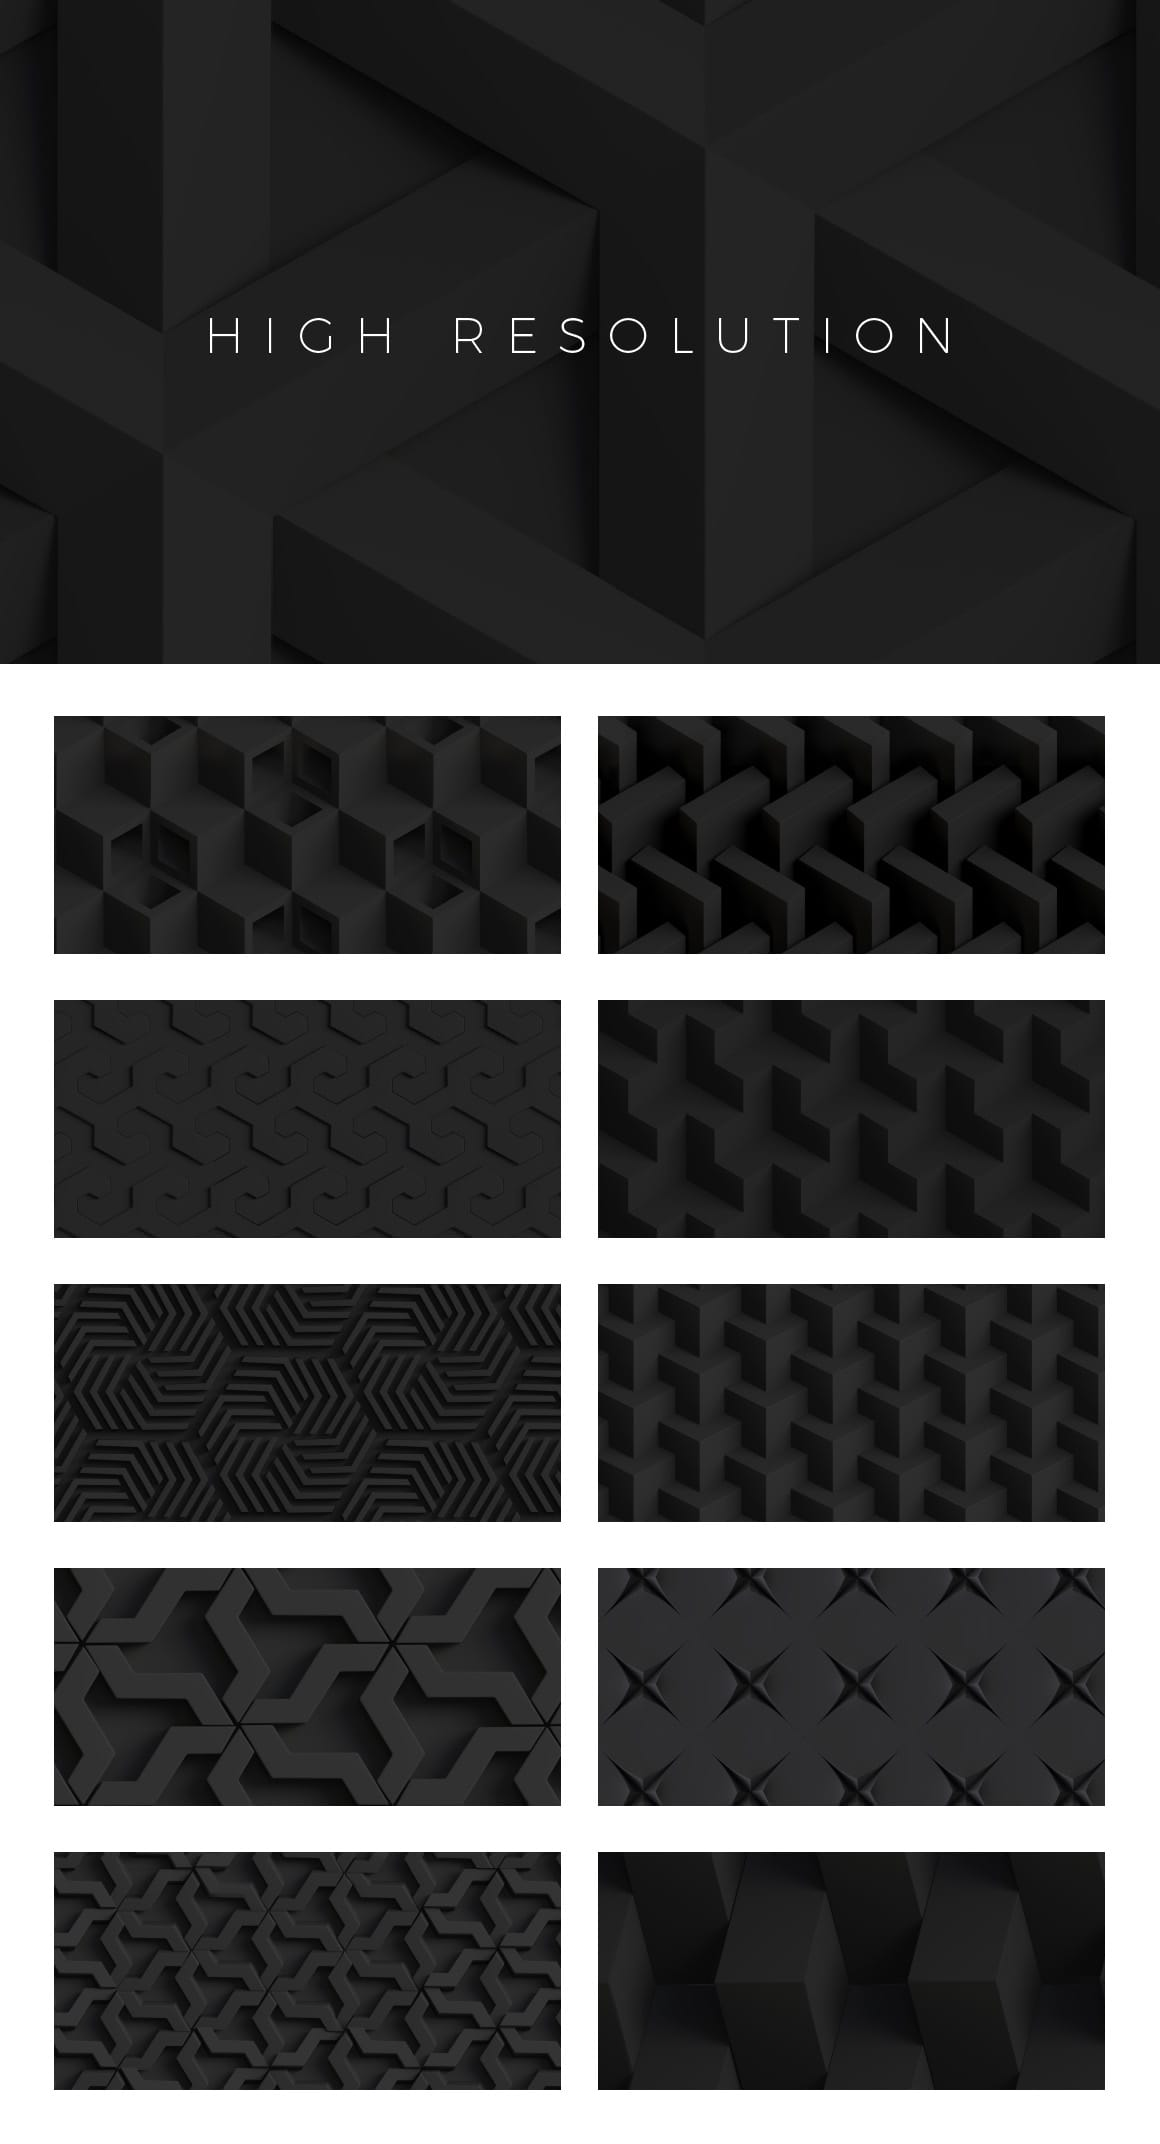 3D Matte Black Patterns for Photoshop